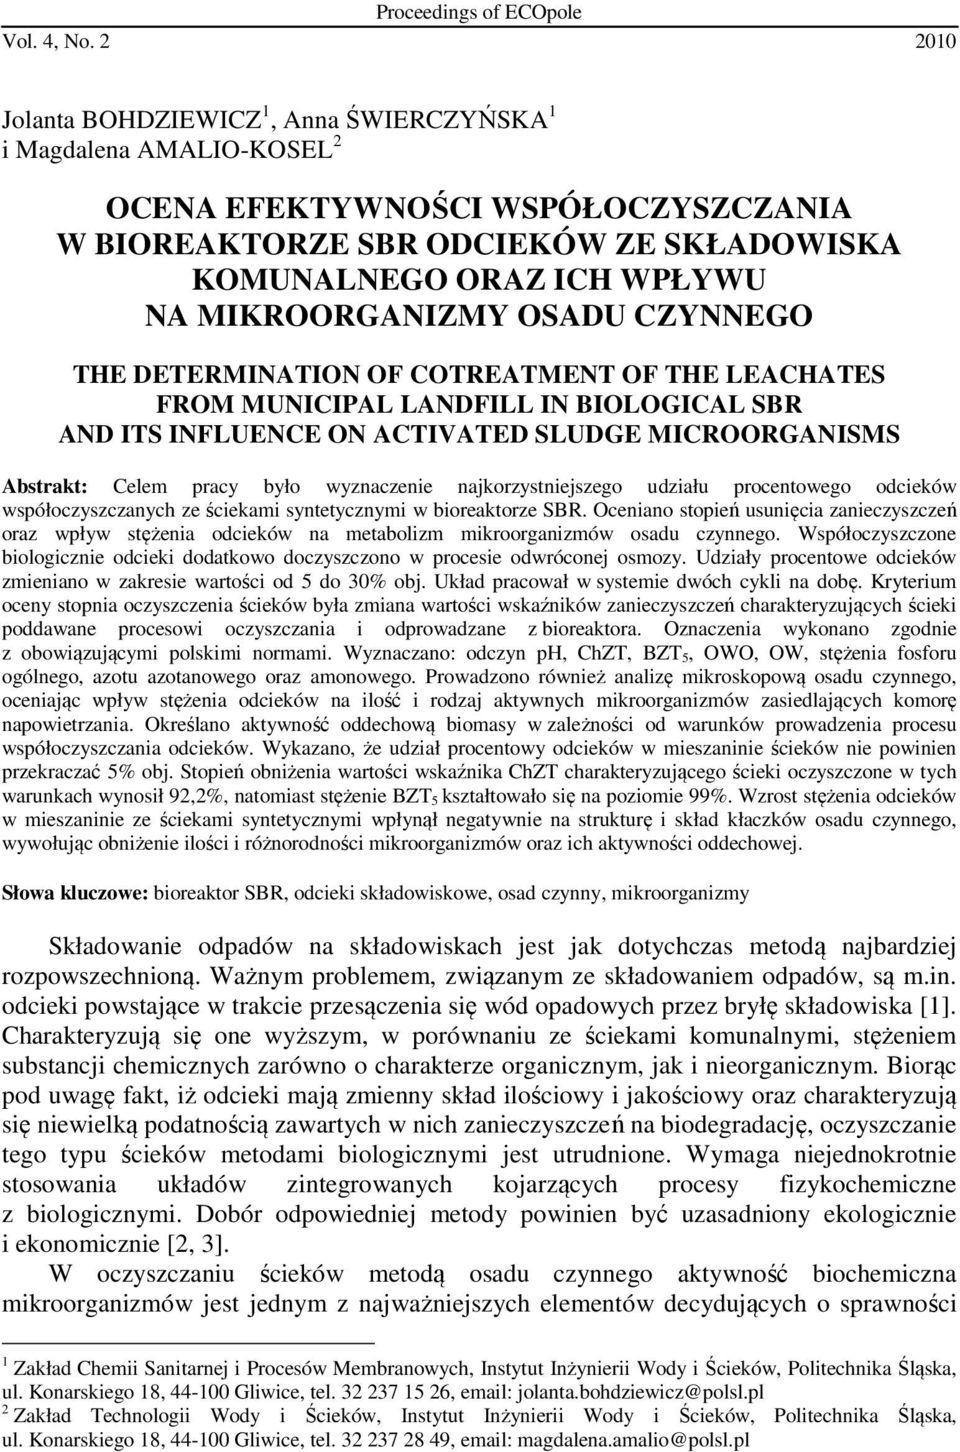 MIKROORGANIZMY OSADU CZYNNEGO THE DETERMINATION OF COTREATMENT OF THE LEACHATES FROM MUNICIPAL LANDFILL IN BIOLOGICAL SBR AND ITS INFLUENCE ON ACTIVATED SLUDGE MICROORGANISMS Abstrakt: Celem pracy